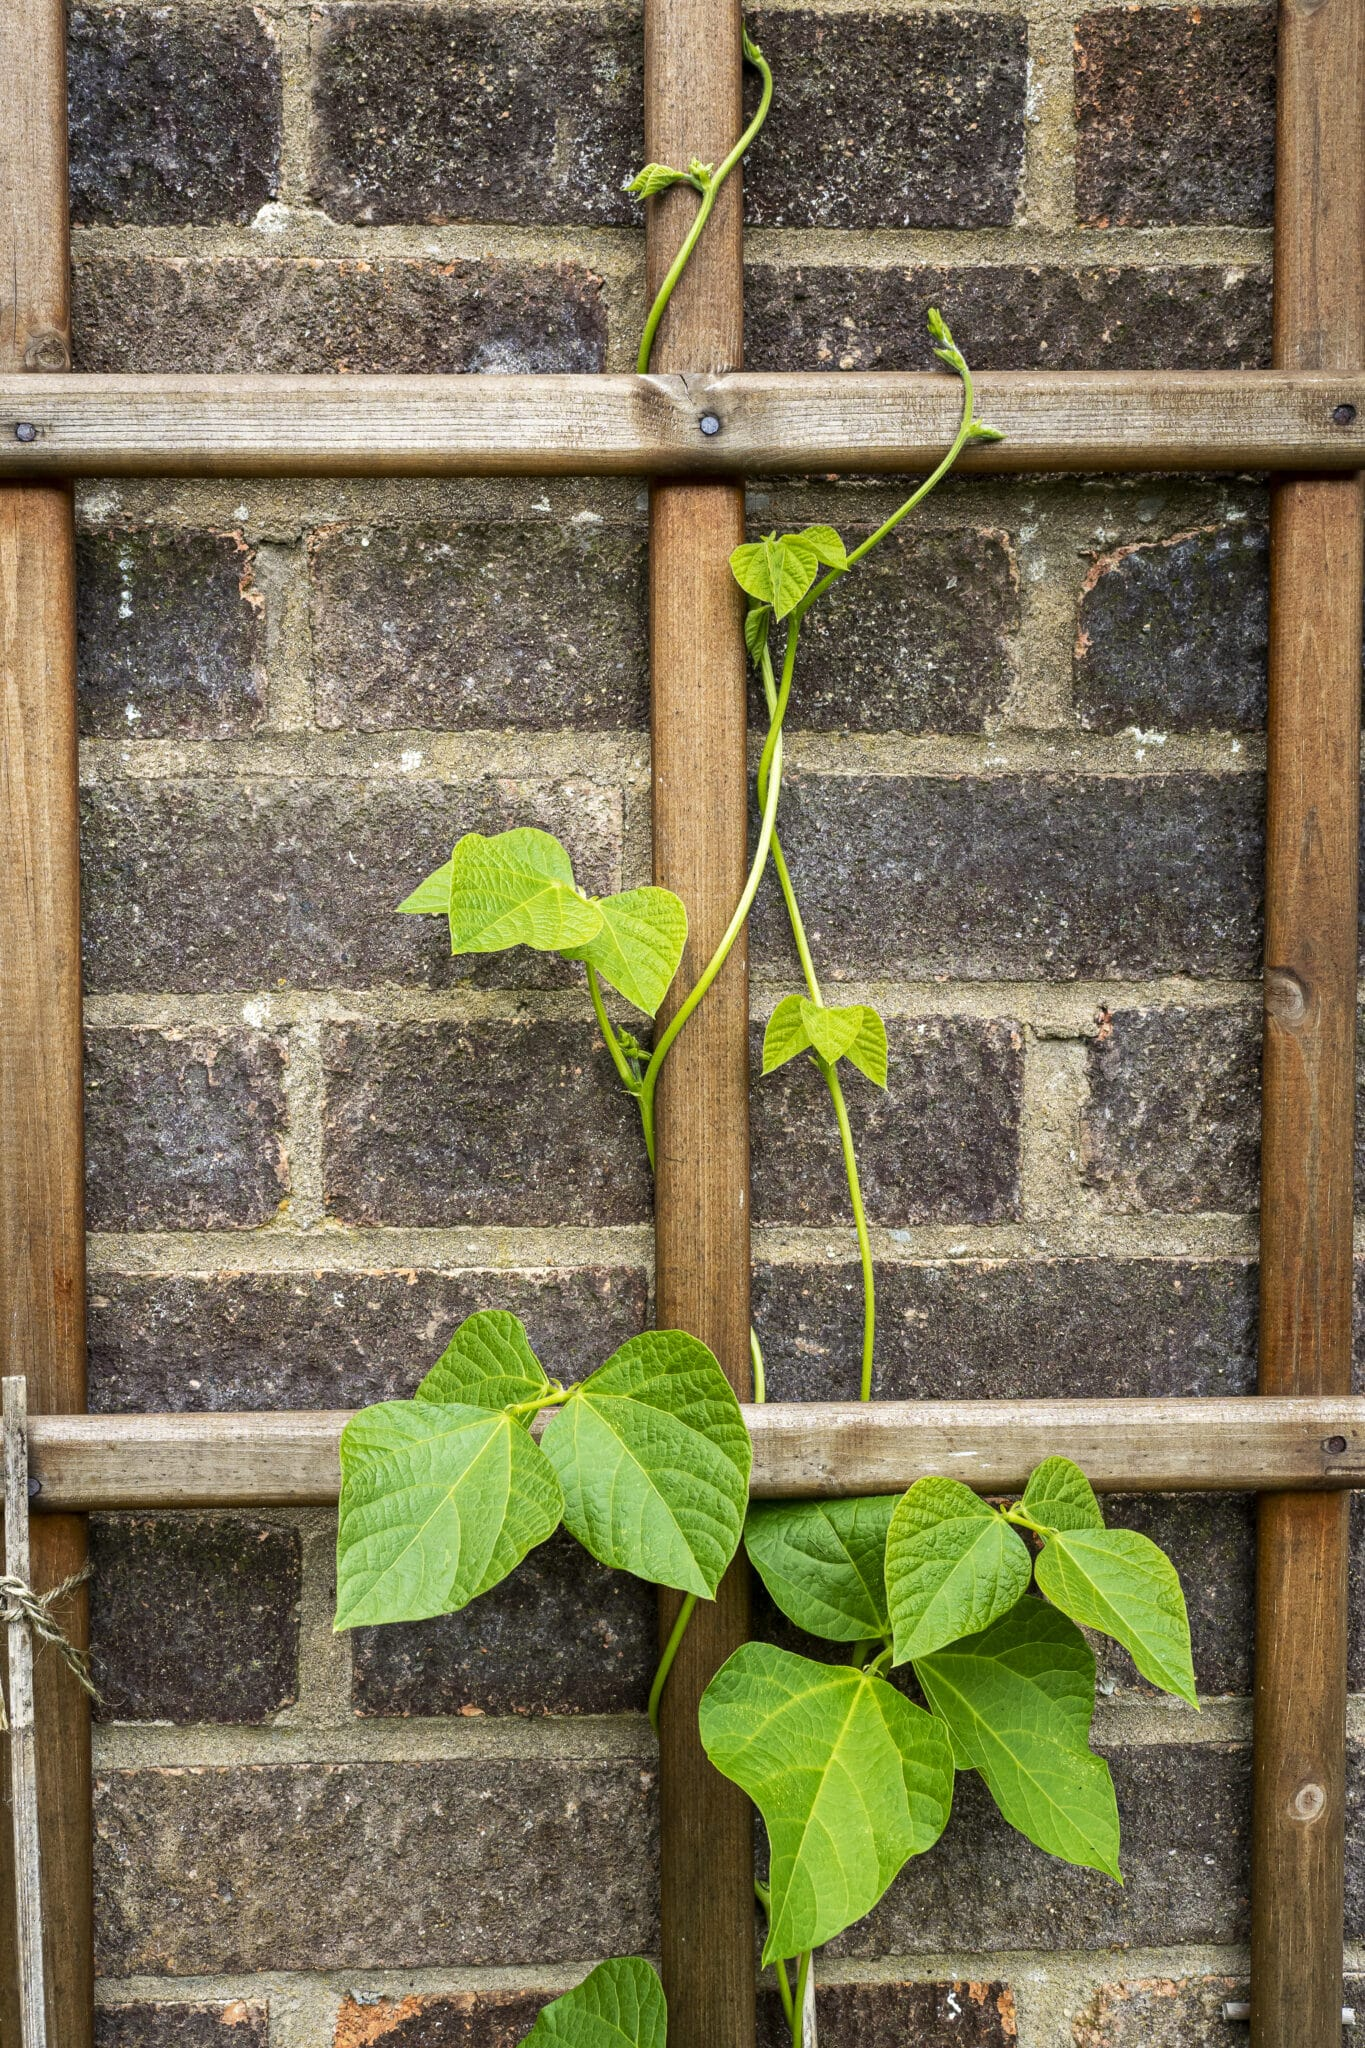 Runner bean plant with green leaves and tendrils climbing up a wooden trellis on a brick wall.